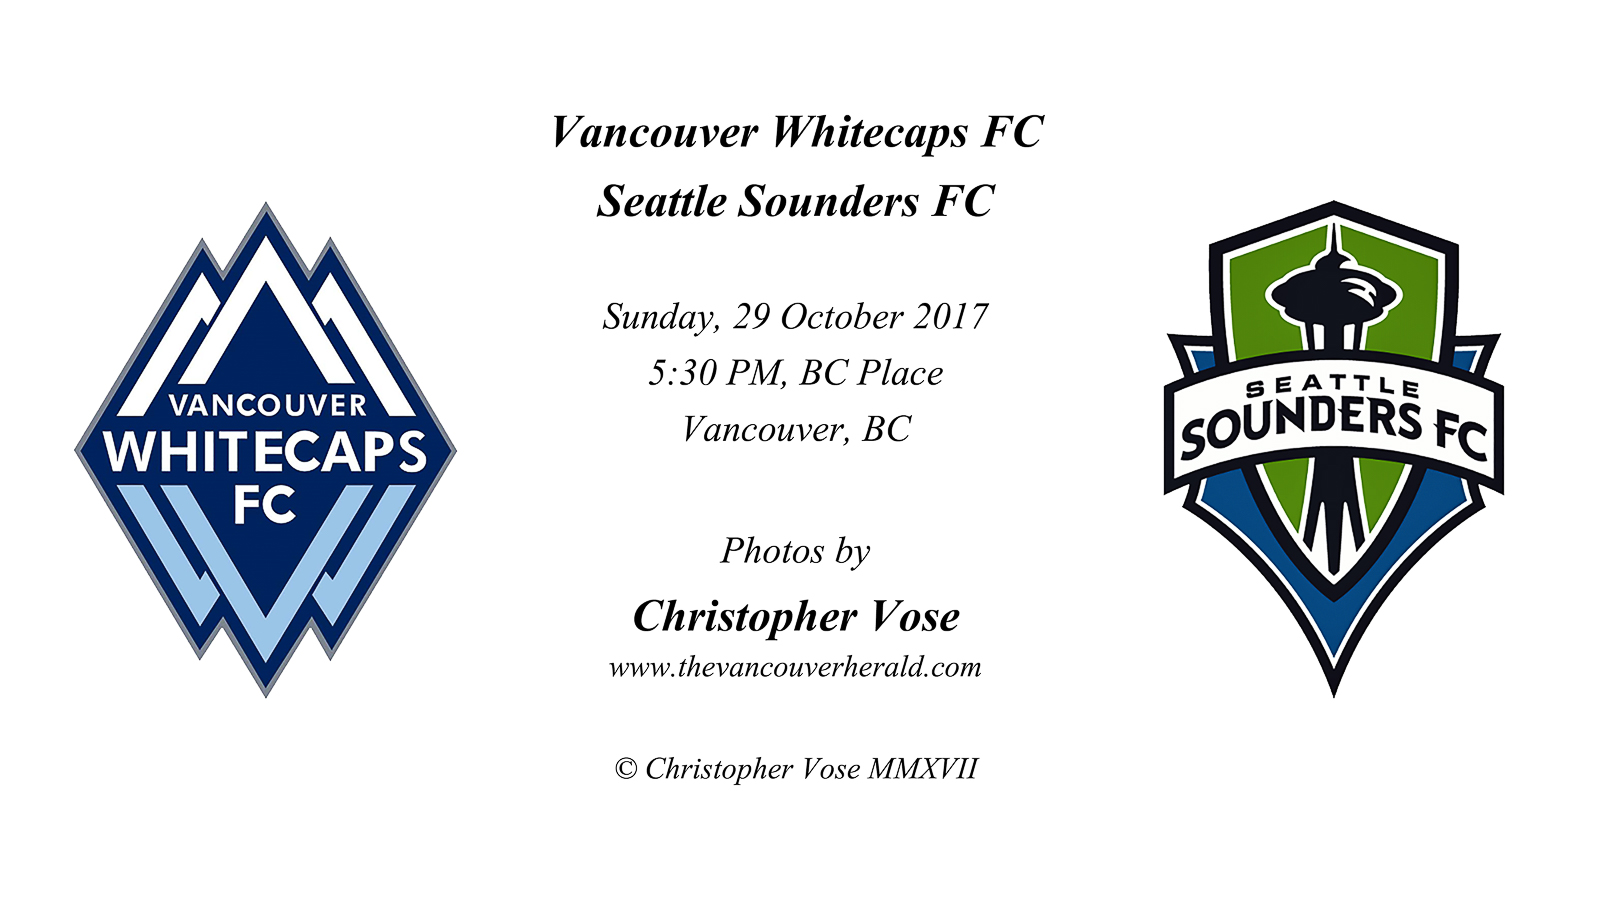 2017-10-29 Vancouver Whitecaps FC v Seattle Sounders FC.jpg